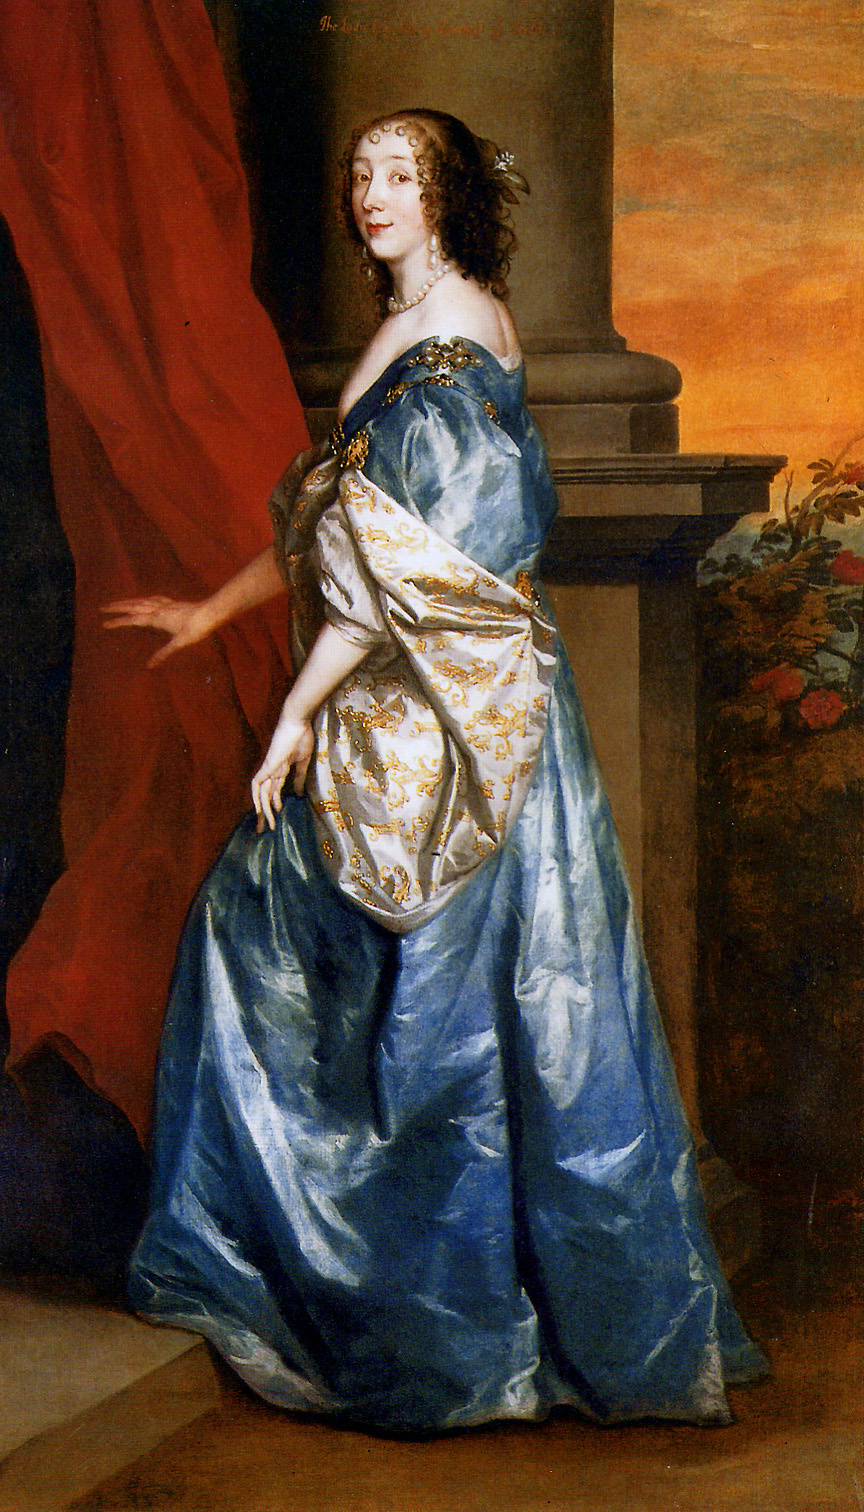 Anthony van Dyck. Lucy Percy, Countess of Carlisle